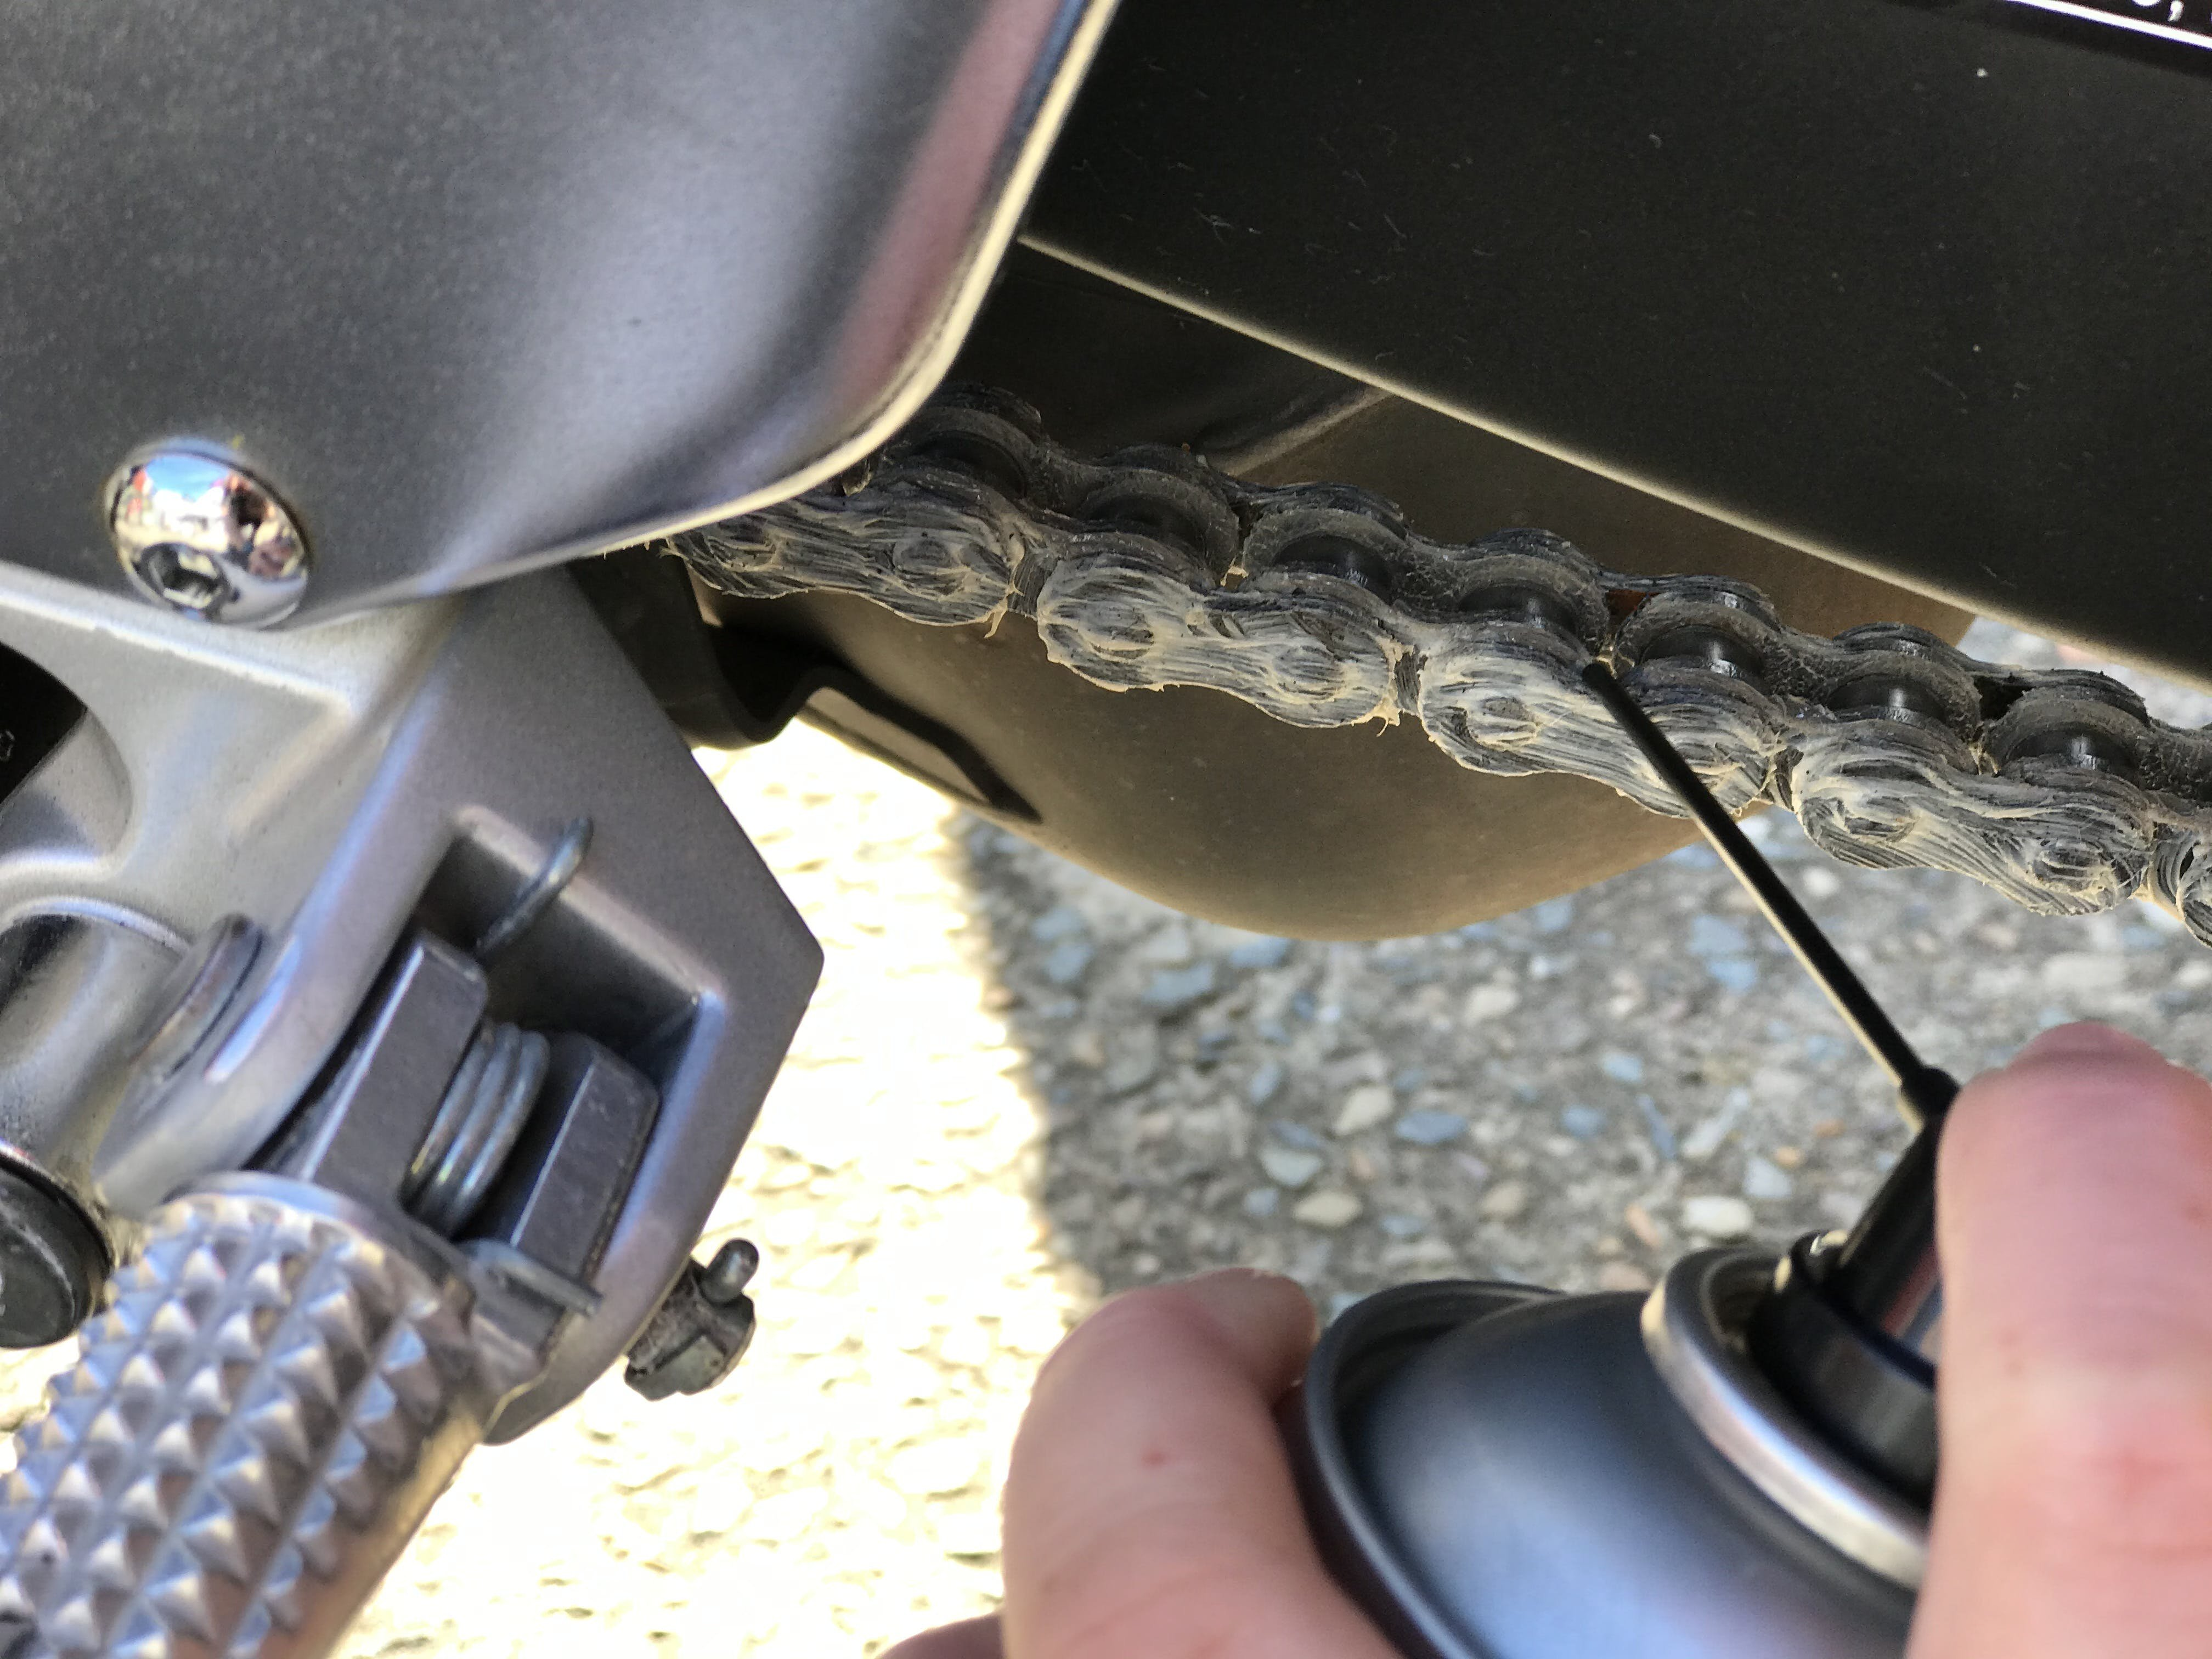 Straw on chain lube chain can being used on a motorcycle